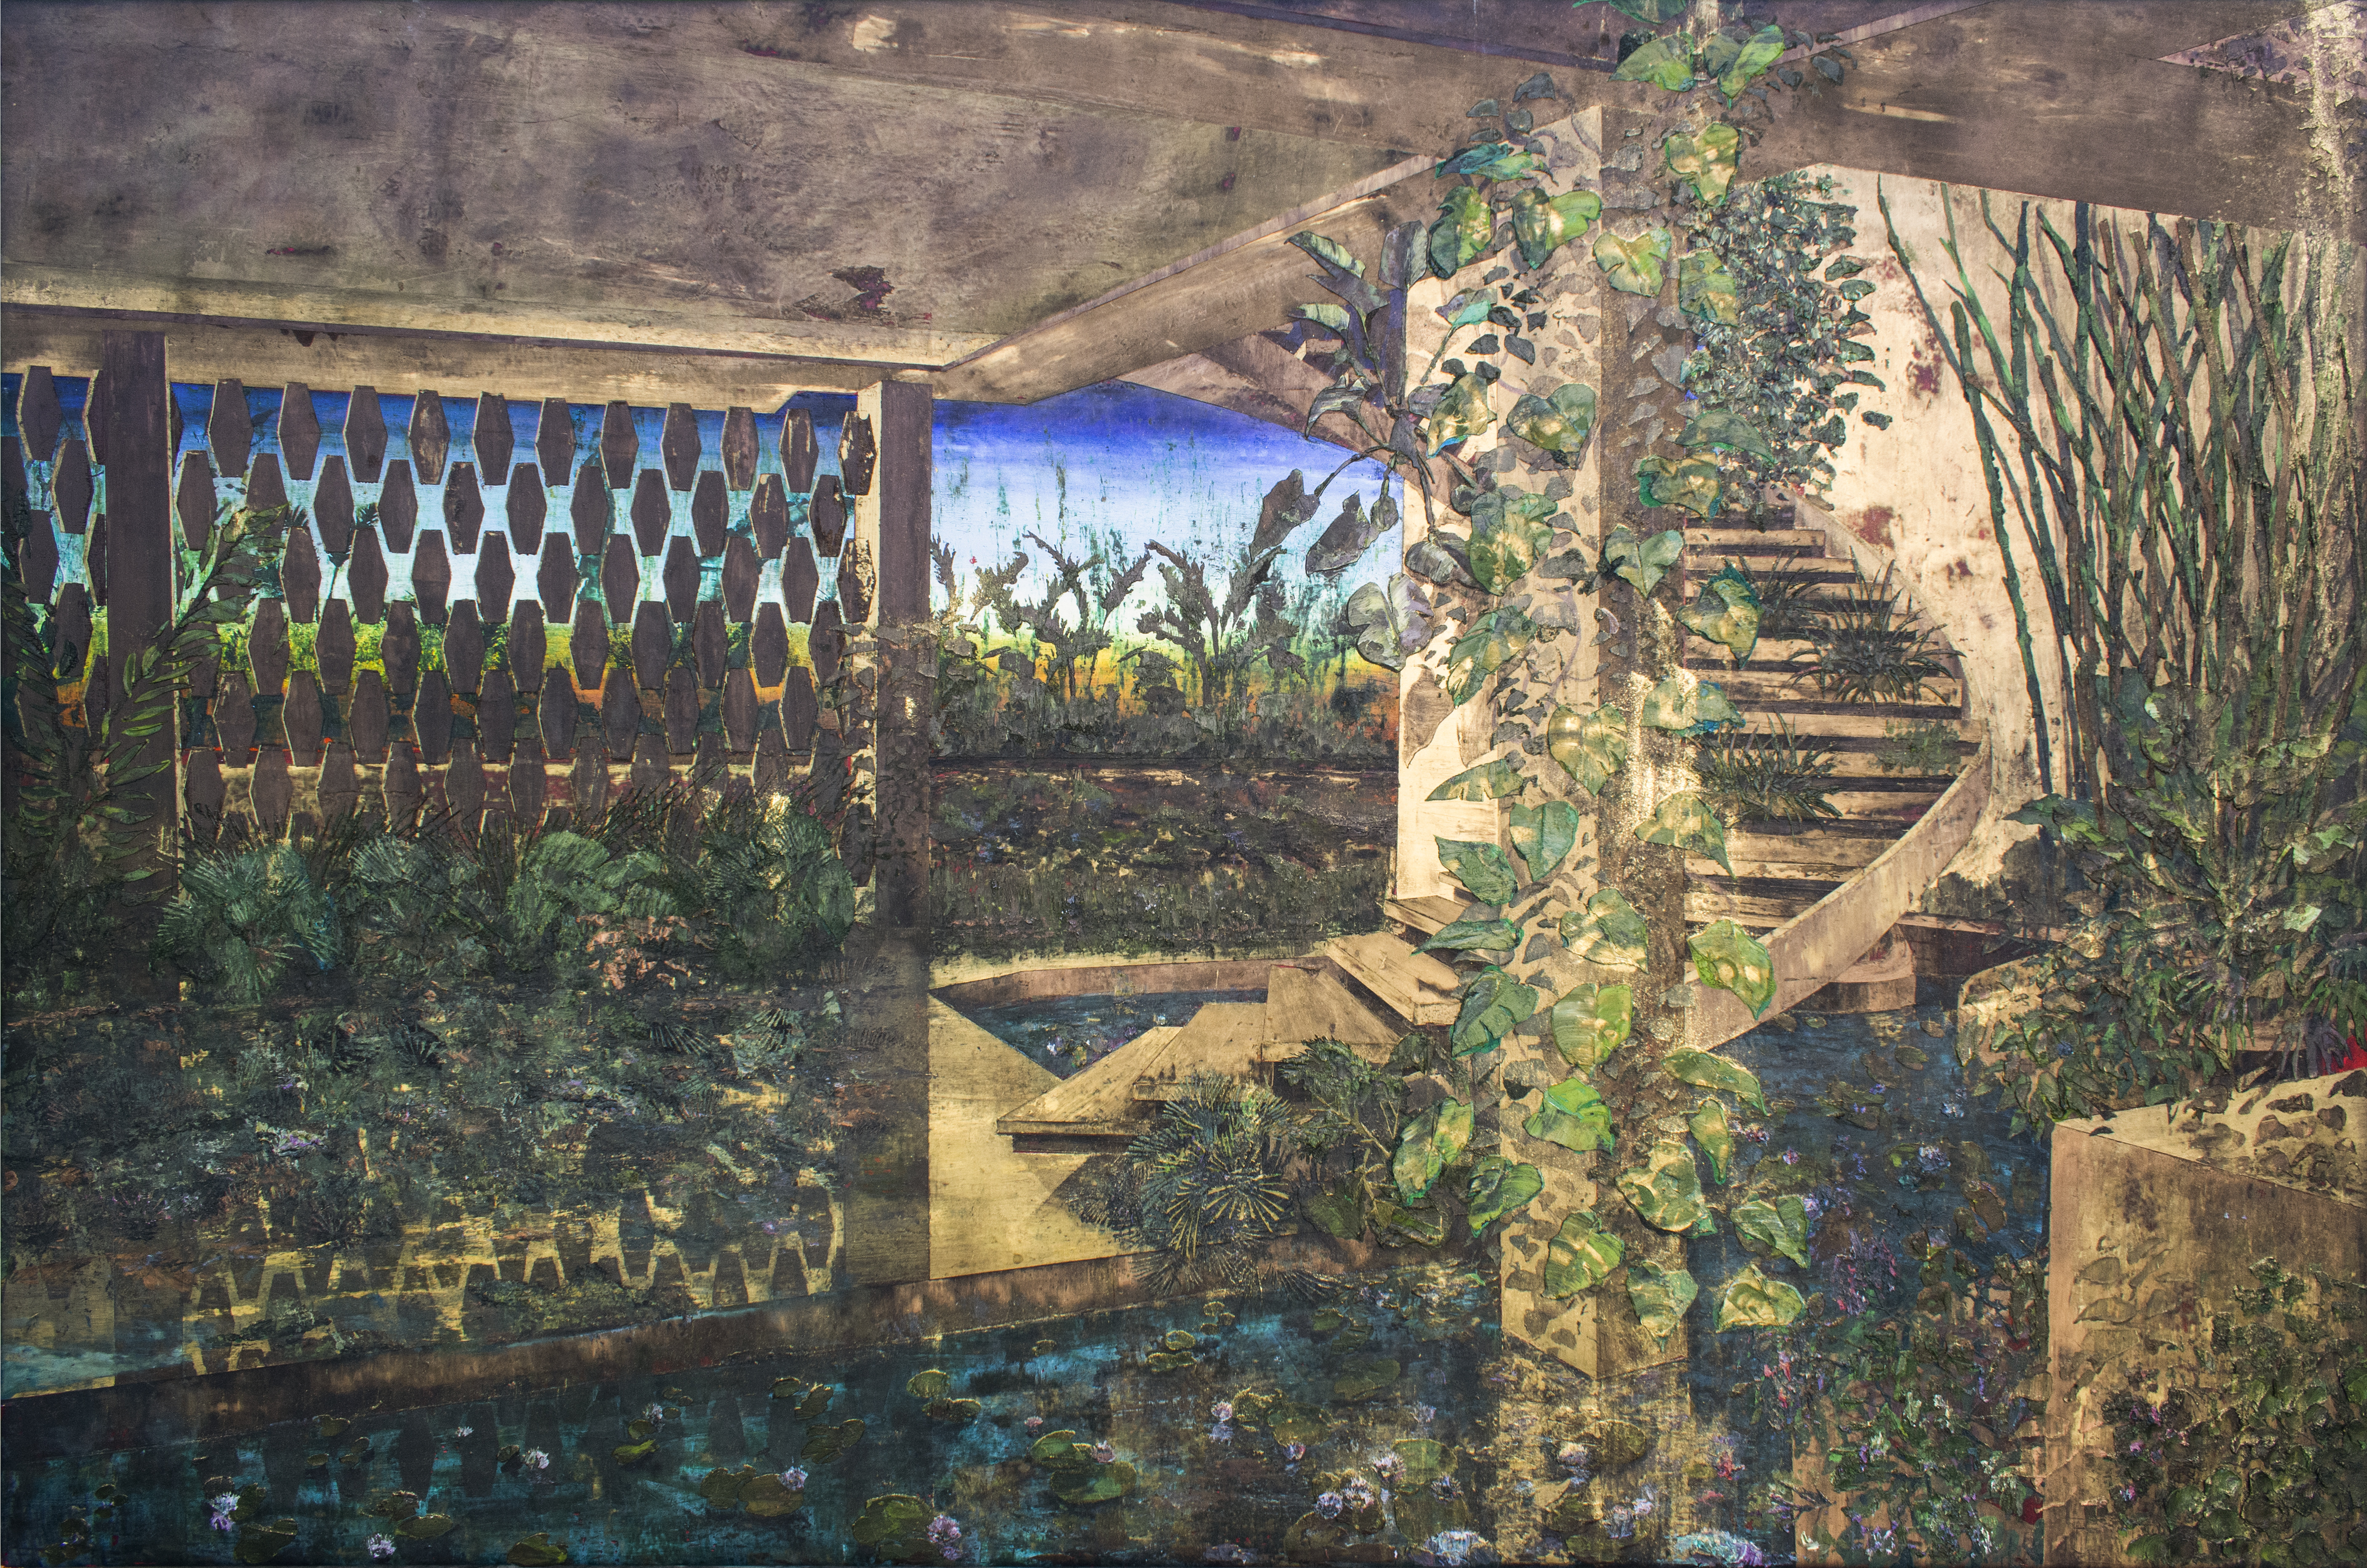 """ID. Hotel La Concha, Condado, P.R., Henry's Myth series, 2021, oil, beeswax and gold pigment on canvas, 40"""" x 61"""", Miguel Soto Collection."""